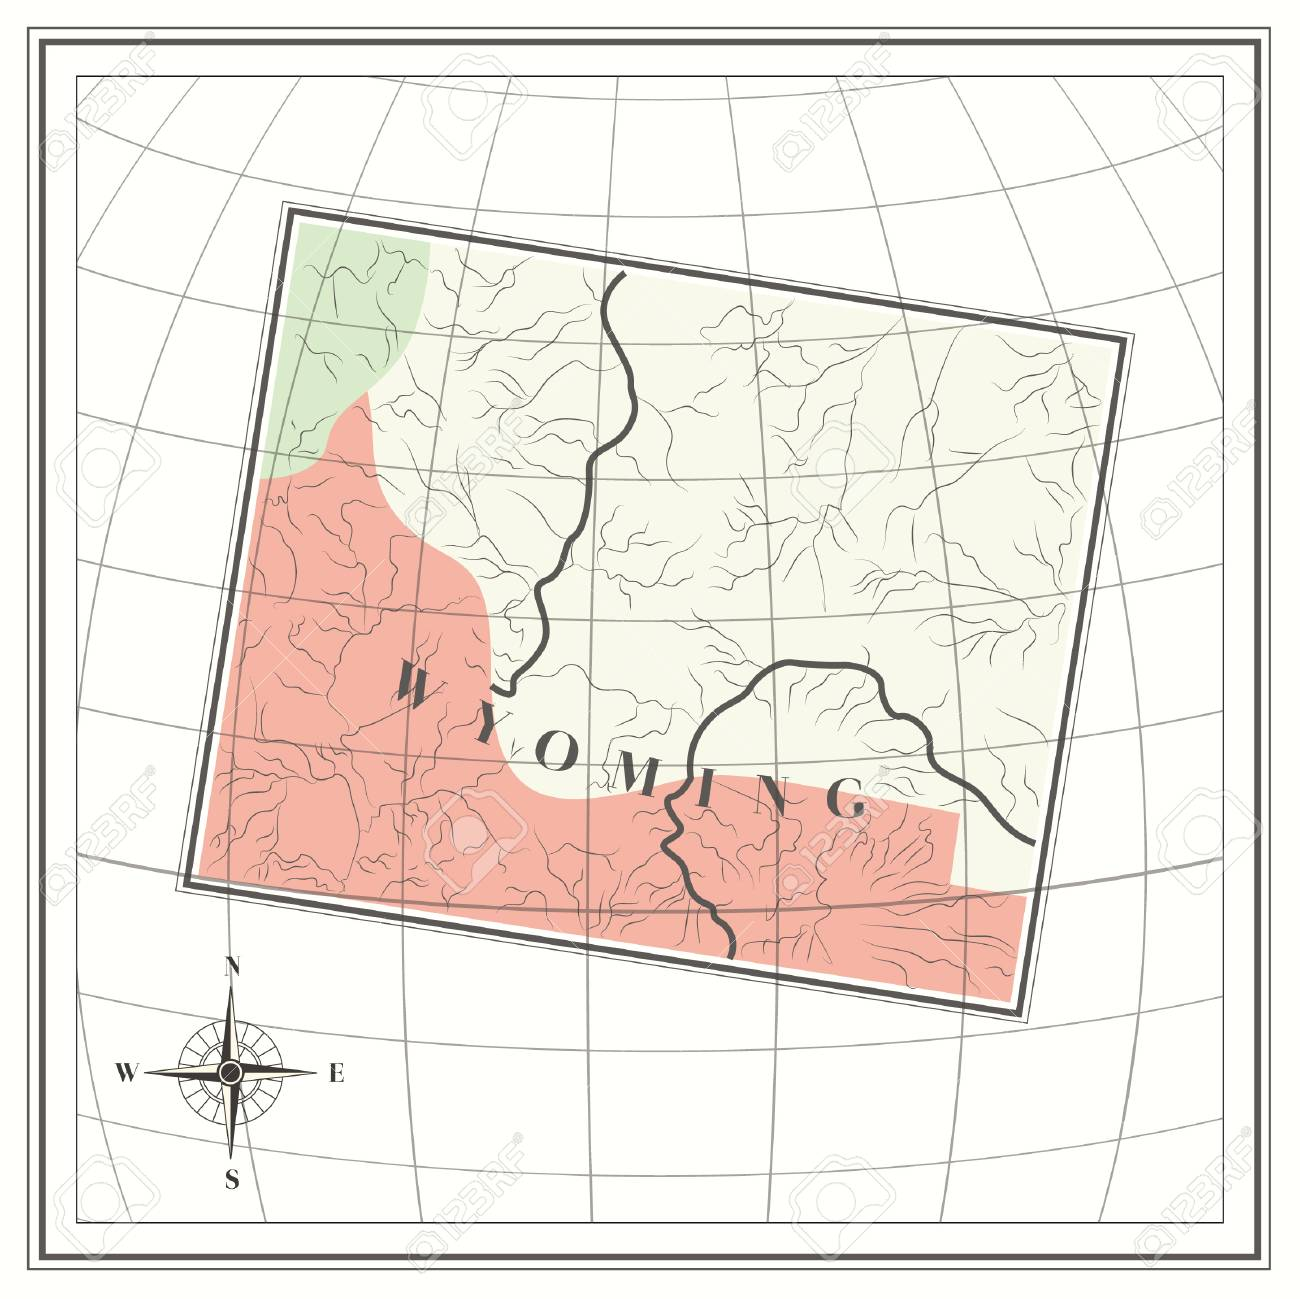 Free Wyoming State Map.Map Of Wyoming State Royalty Free Cliparts Vectors And Stock